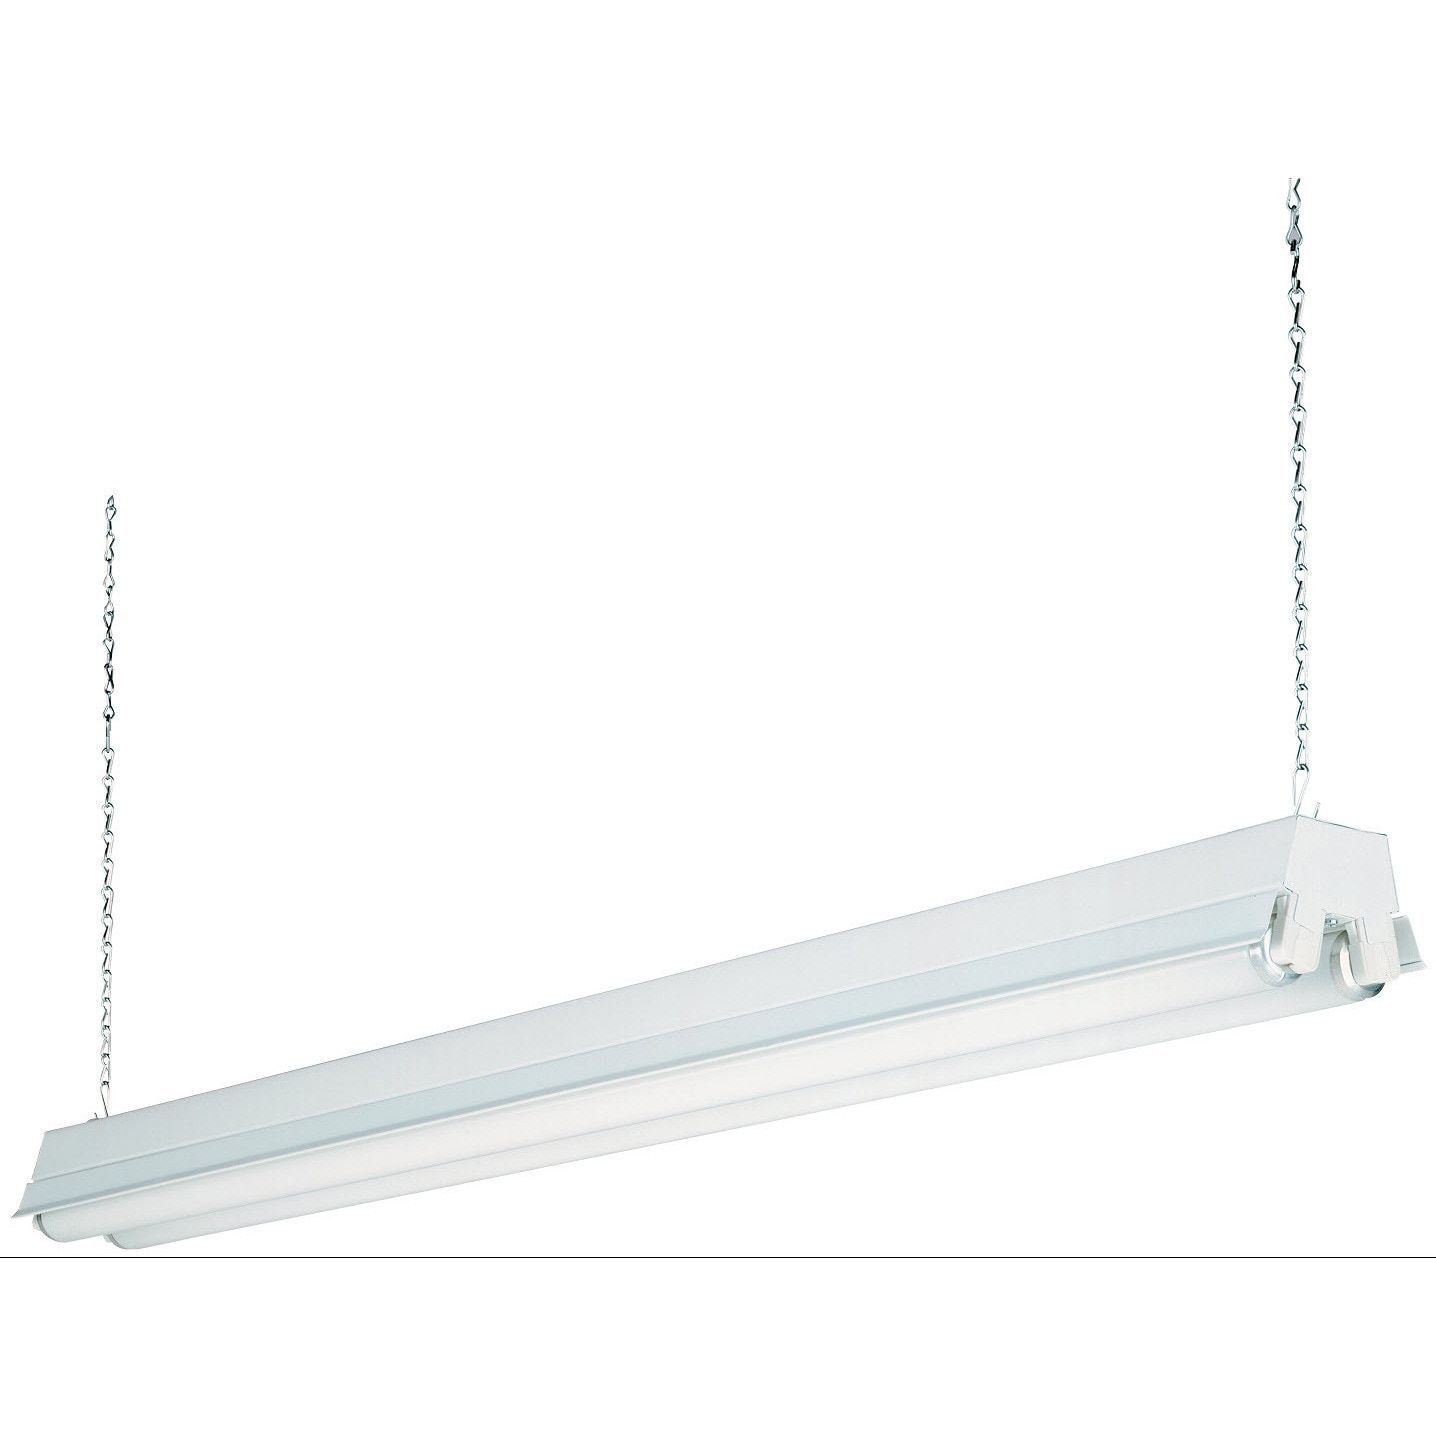 Lithonia Lighting 1233 CW 232 2-Light Cold Weather White T8 ...